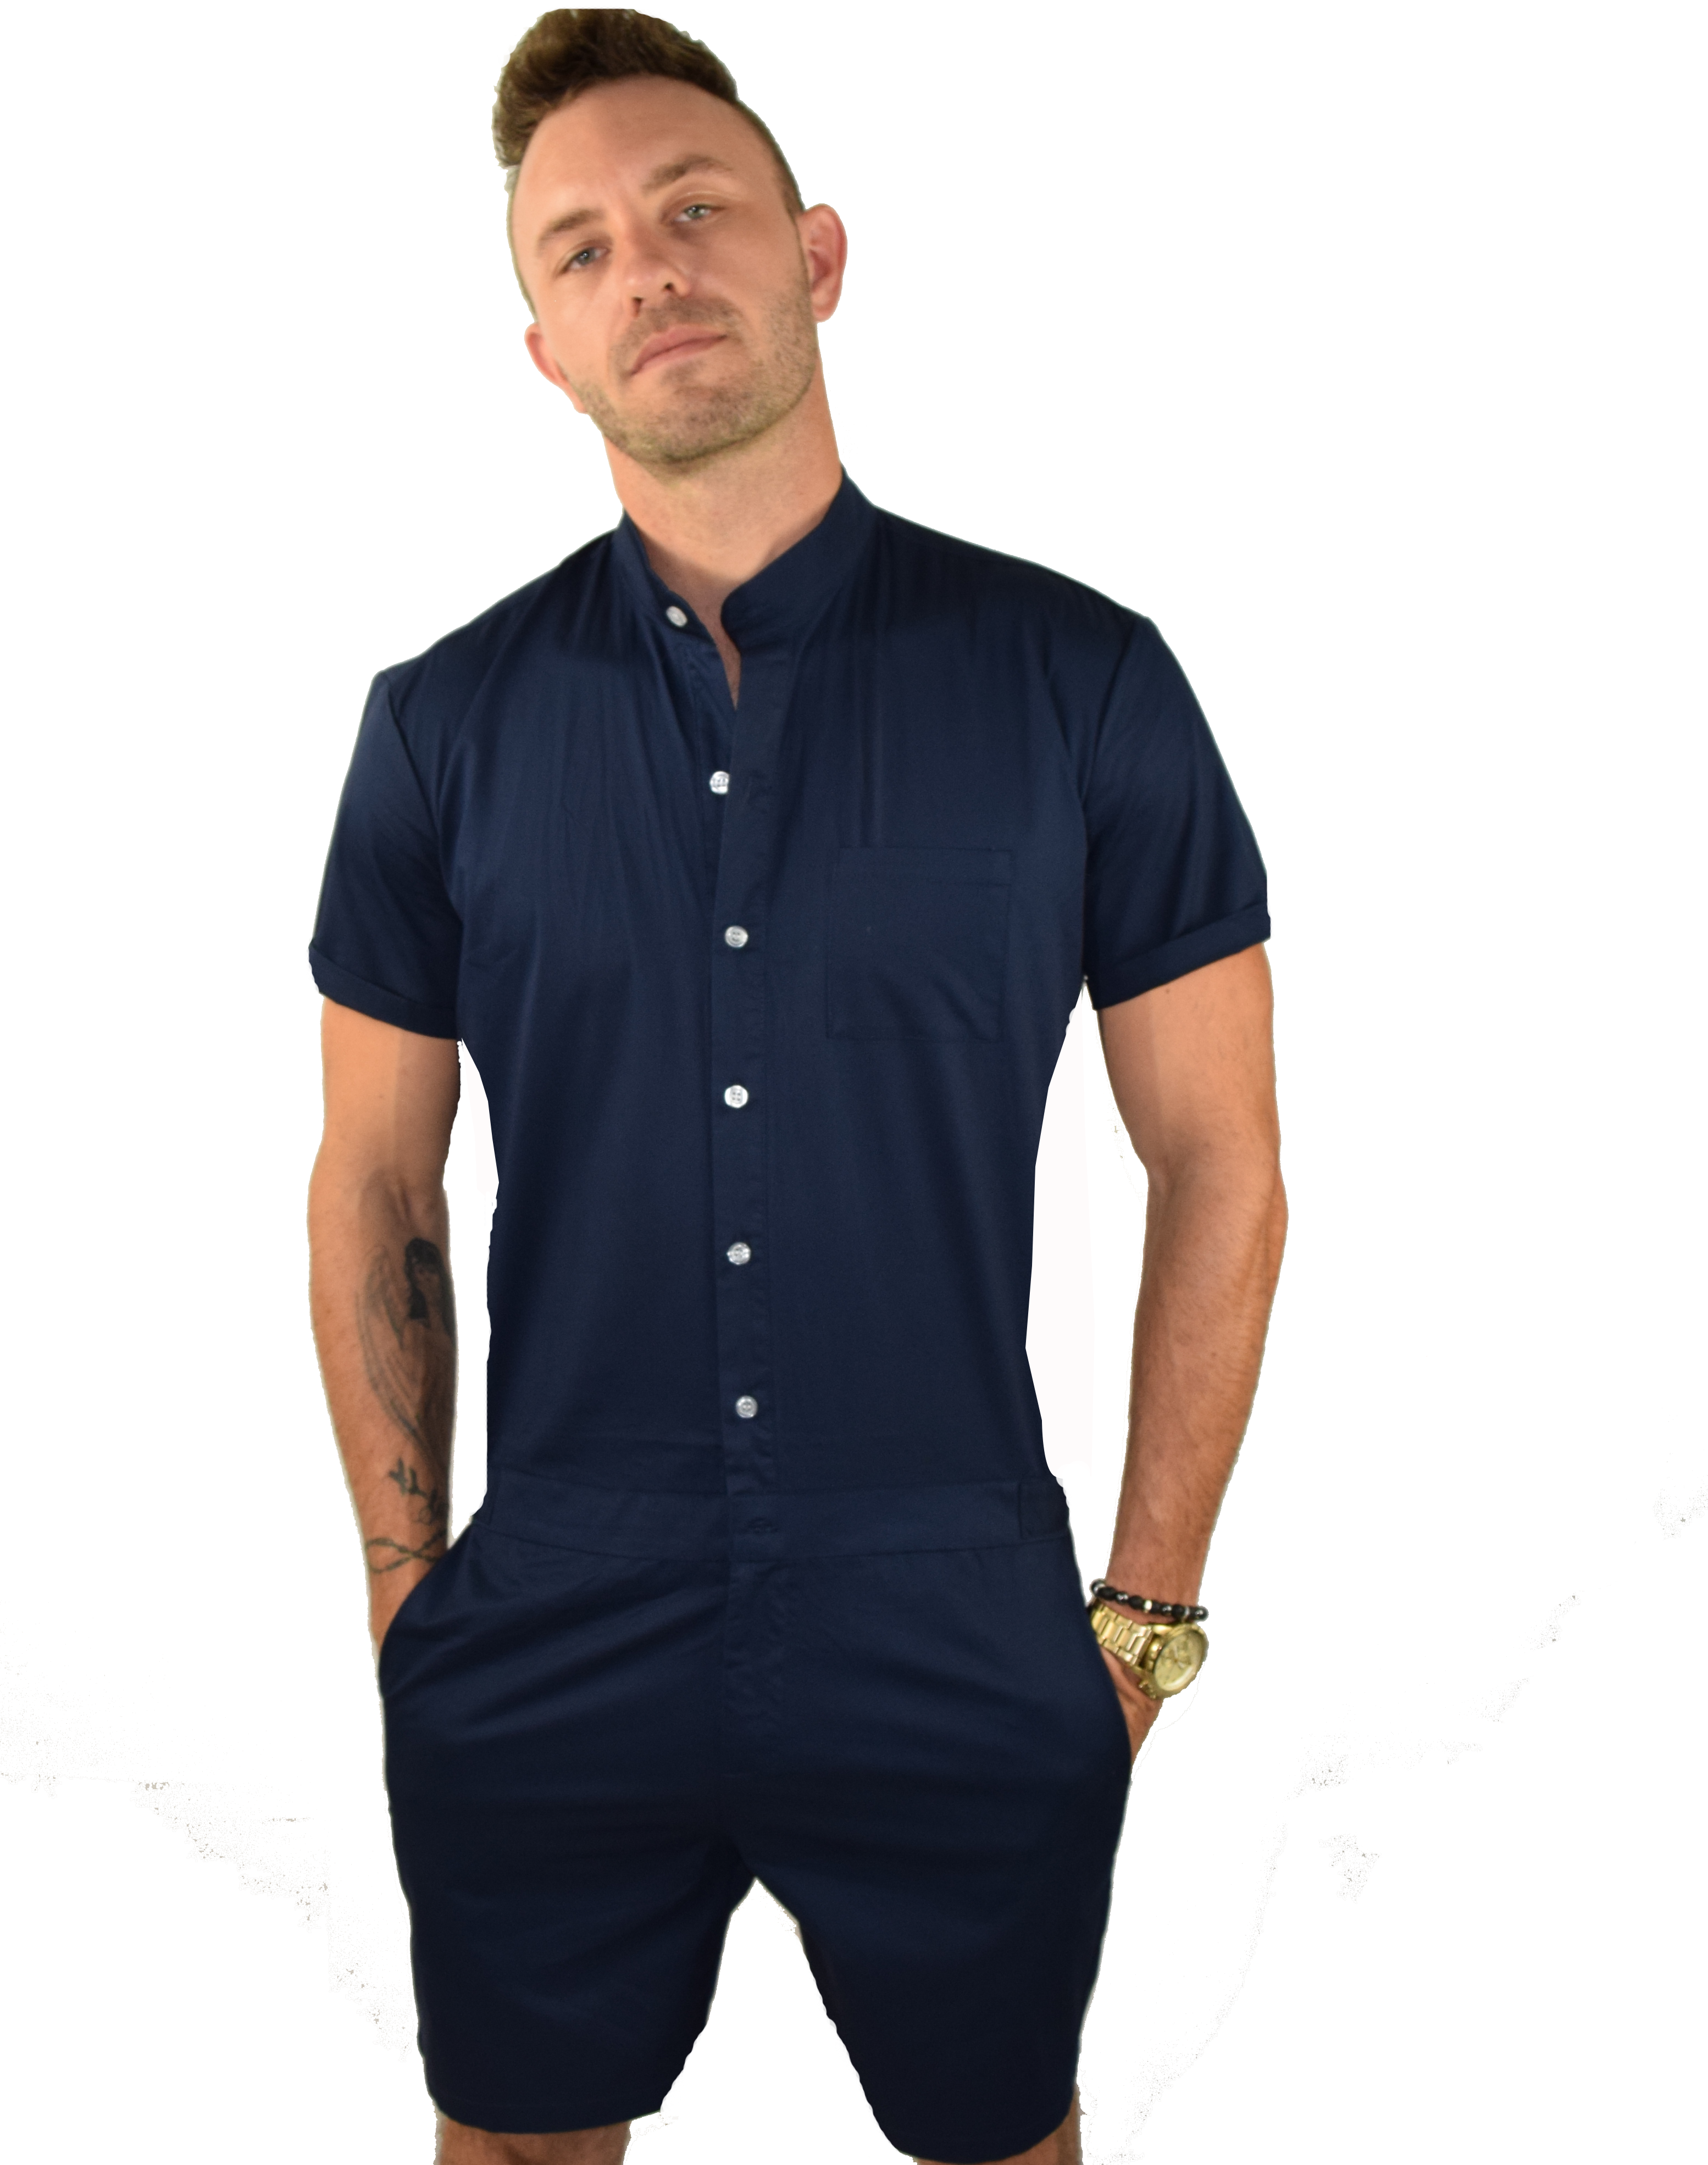 d80e2fa09833 The Original Male Romper in Dark Blue